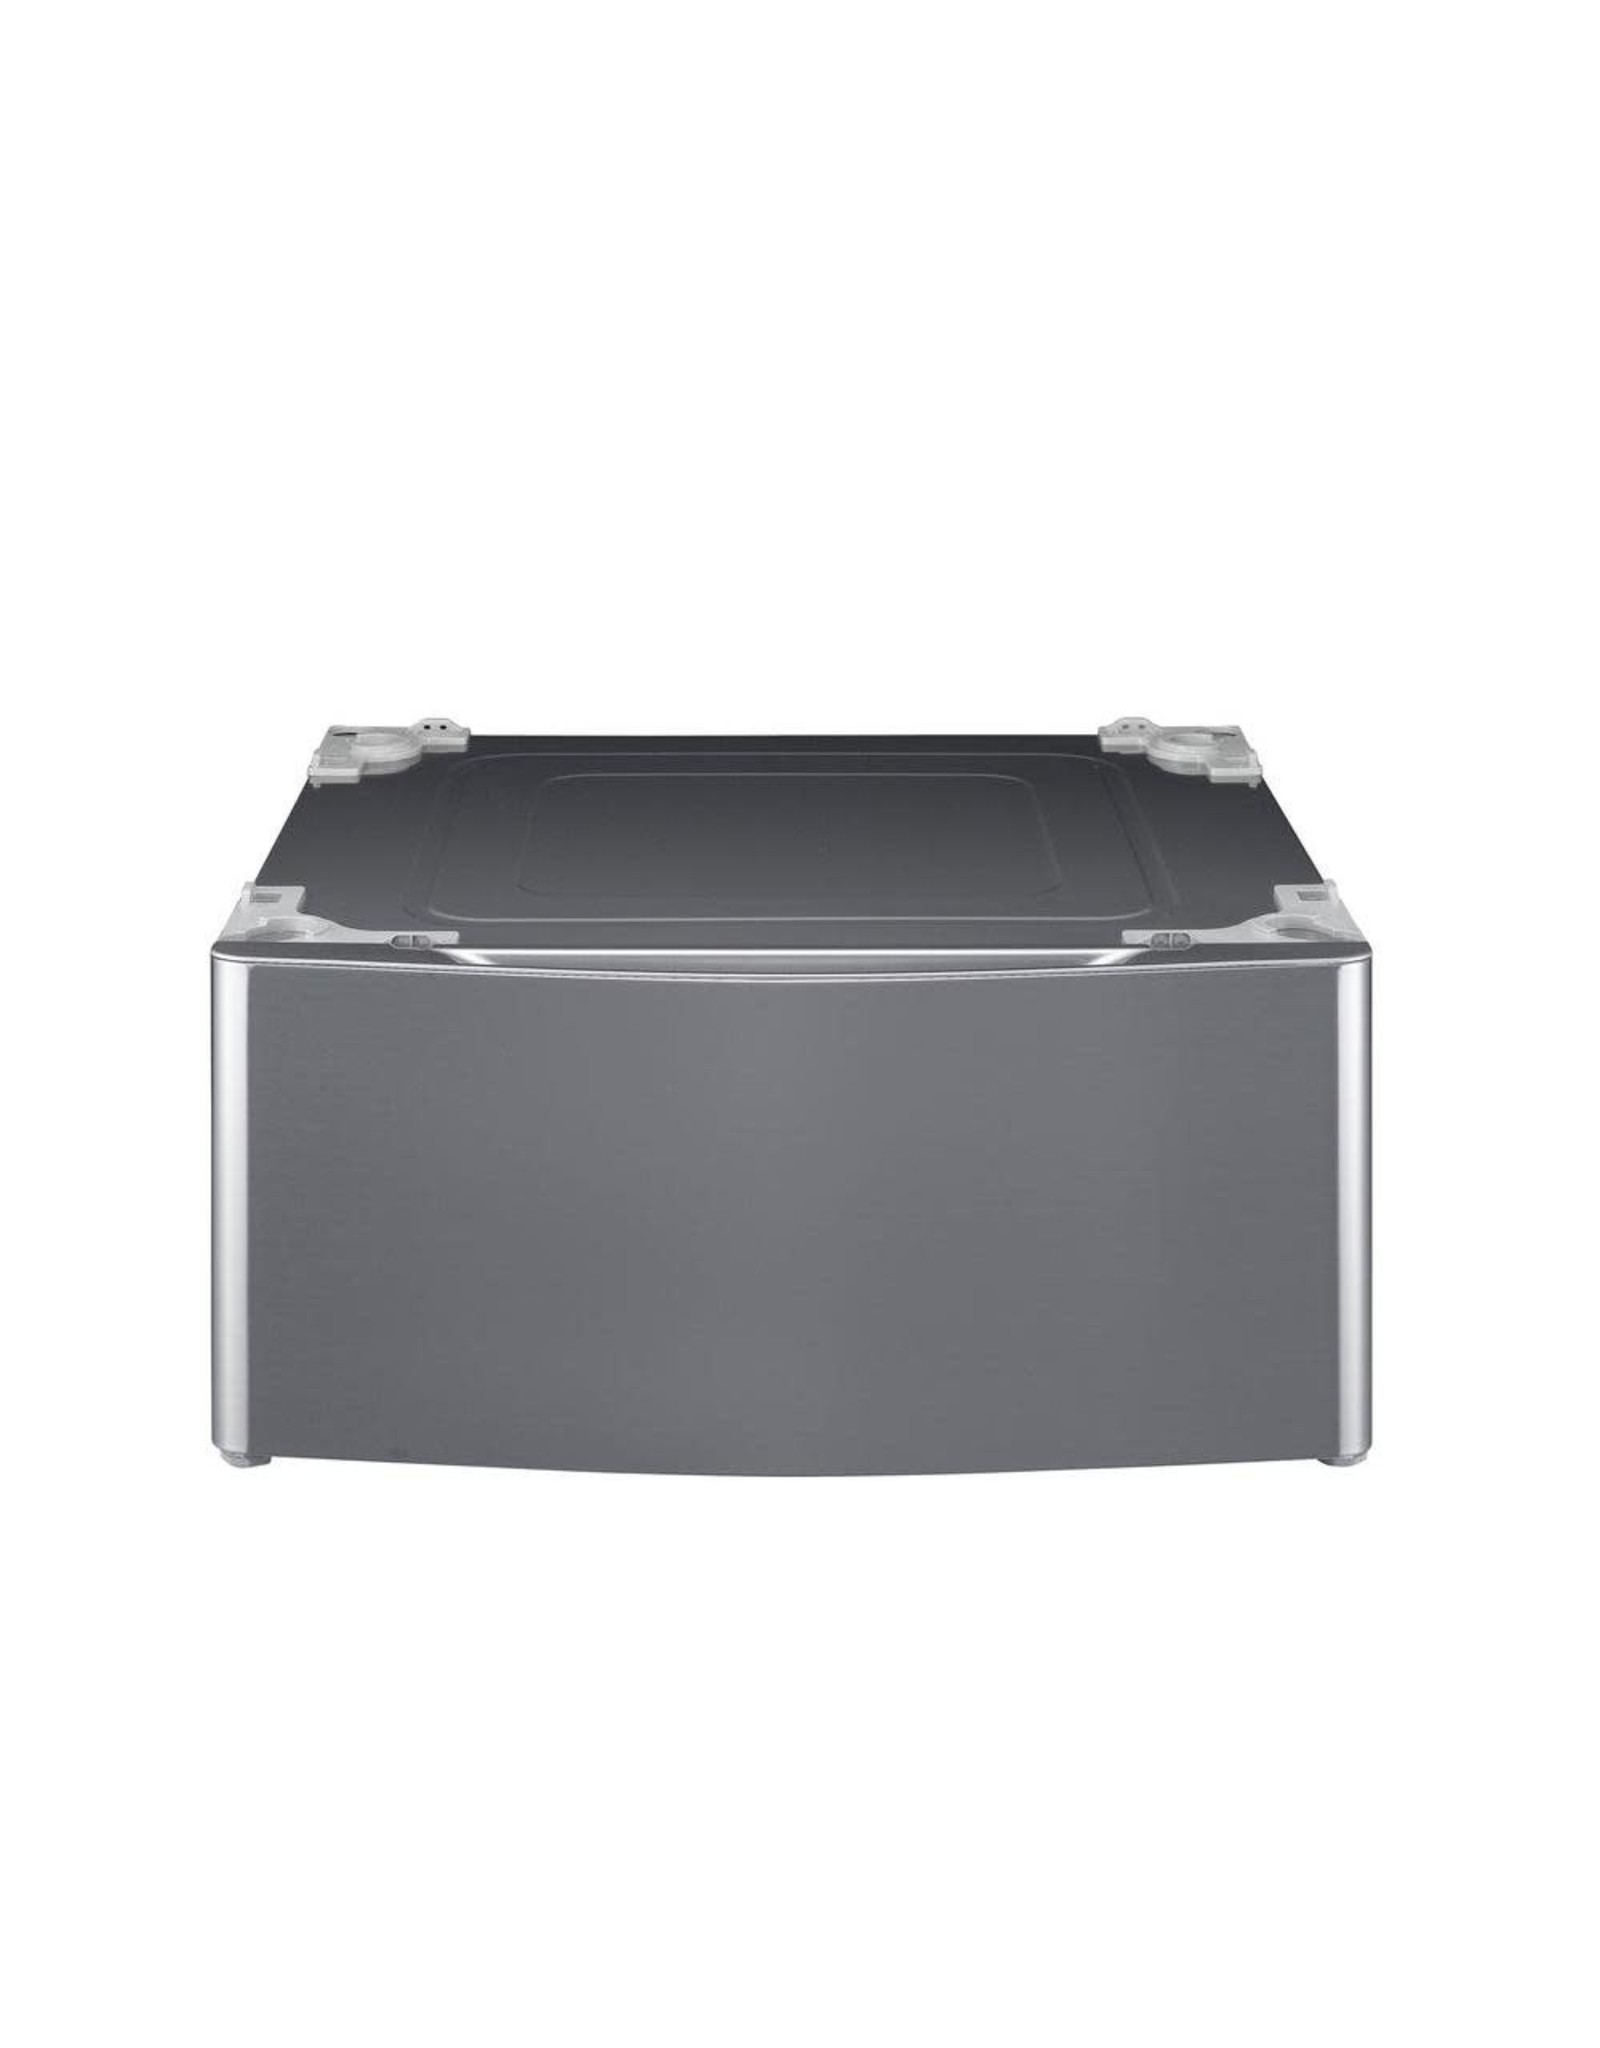 LG Electronics 29 in. Laundry Pedestal with Storage Drawer for Washers and Dryers in Graphite Steel